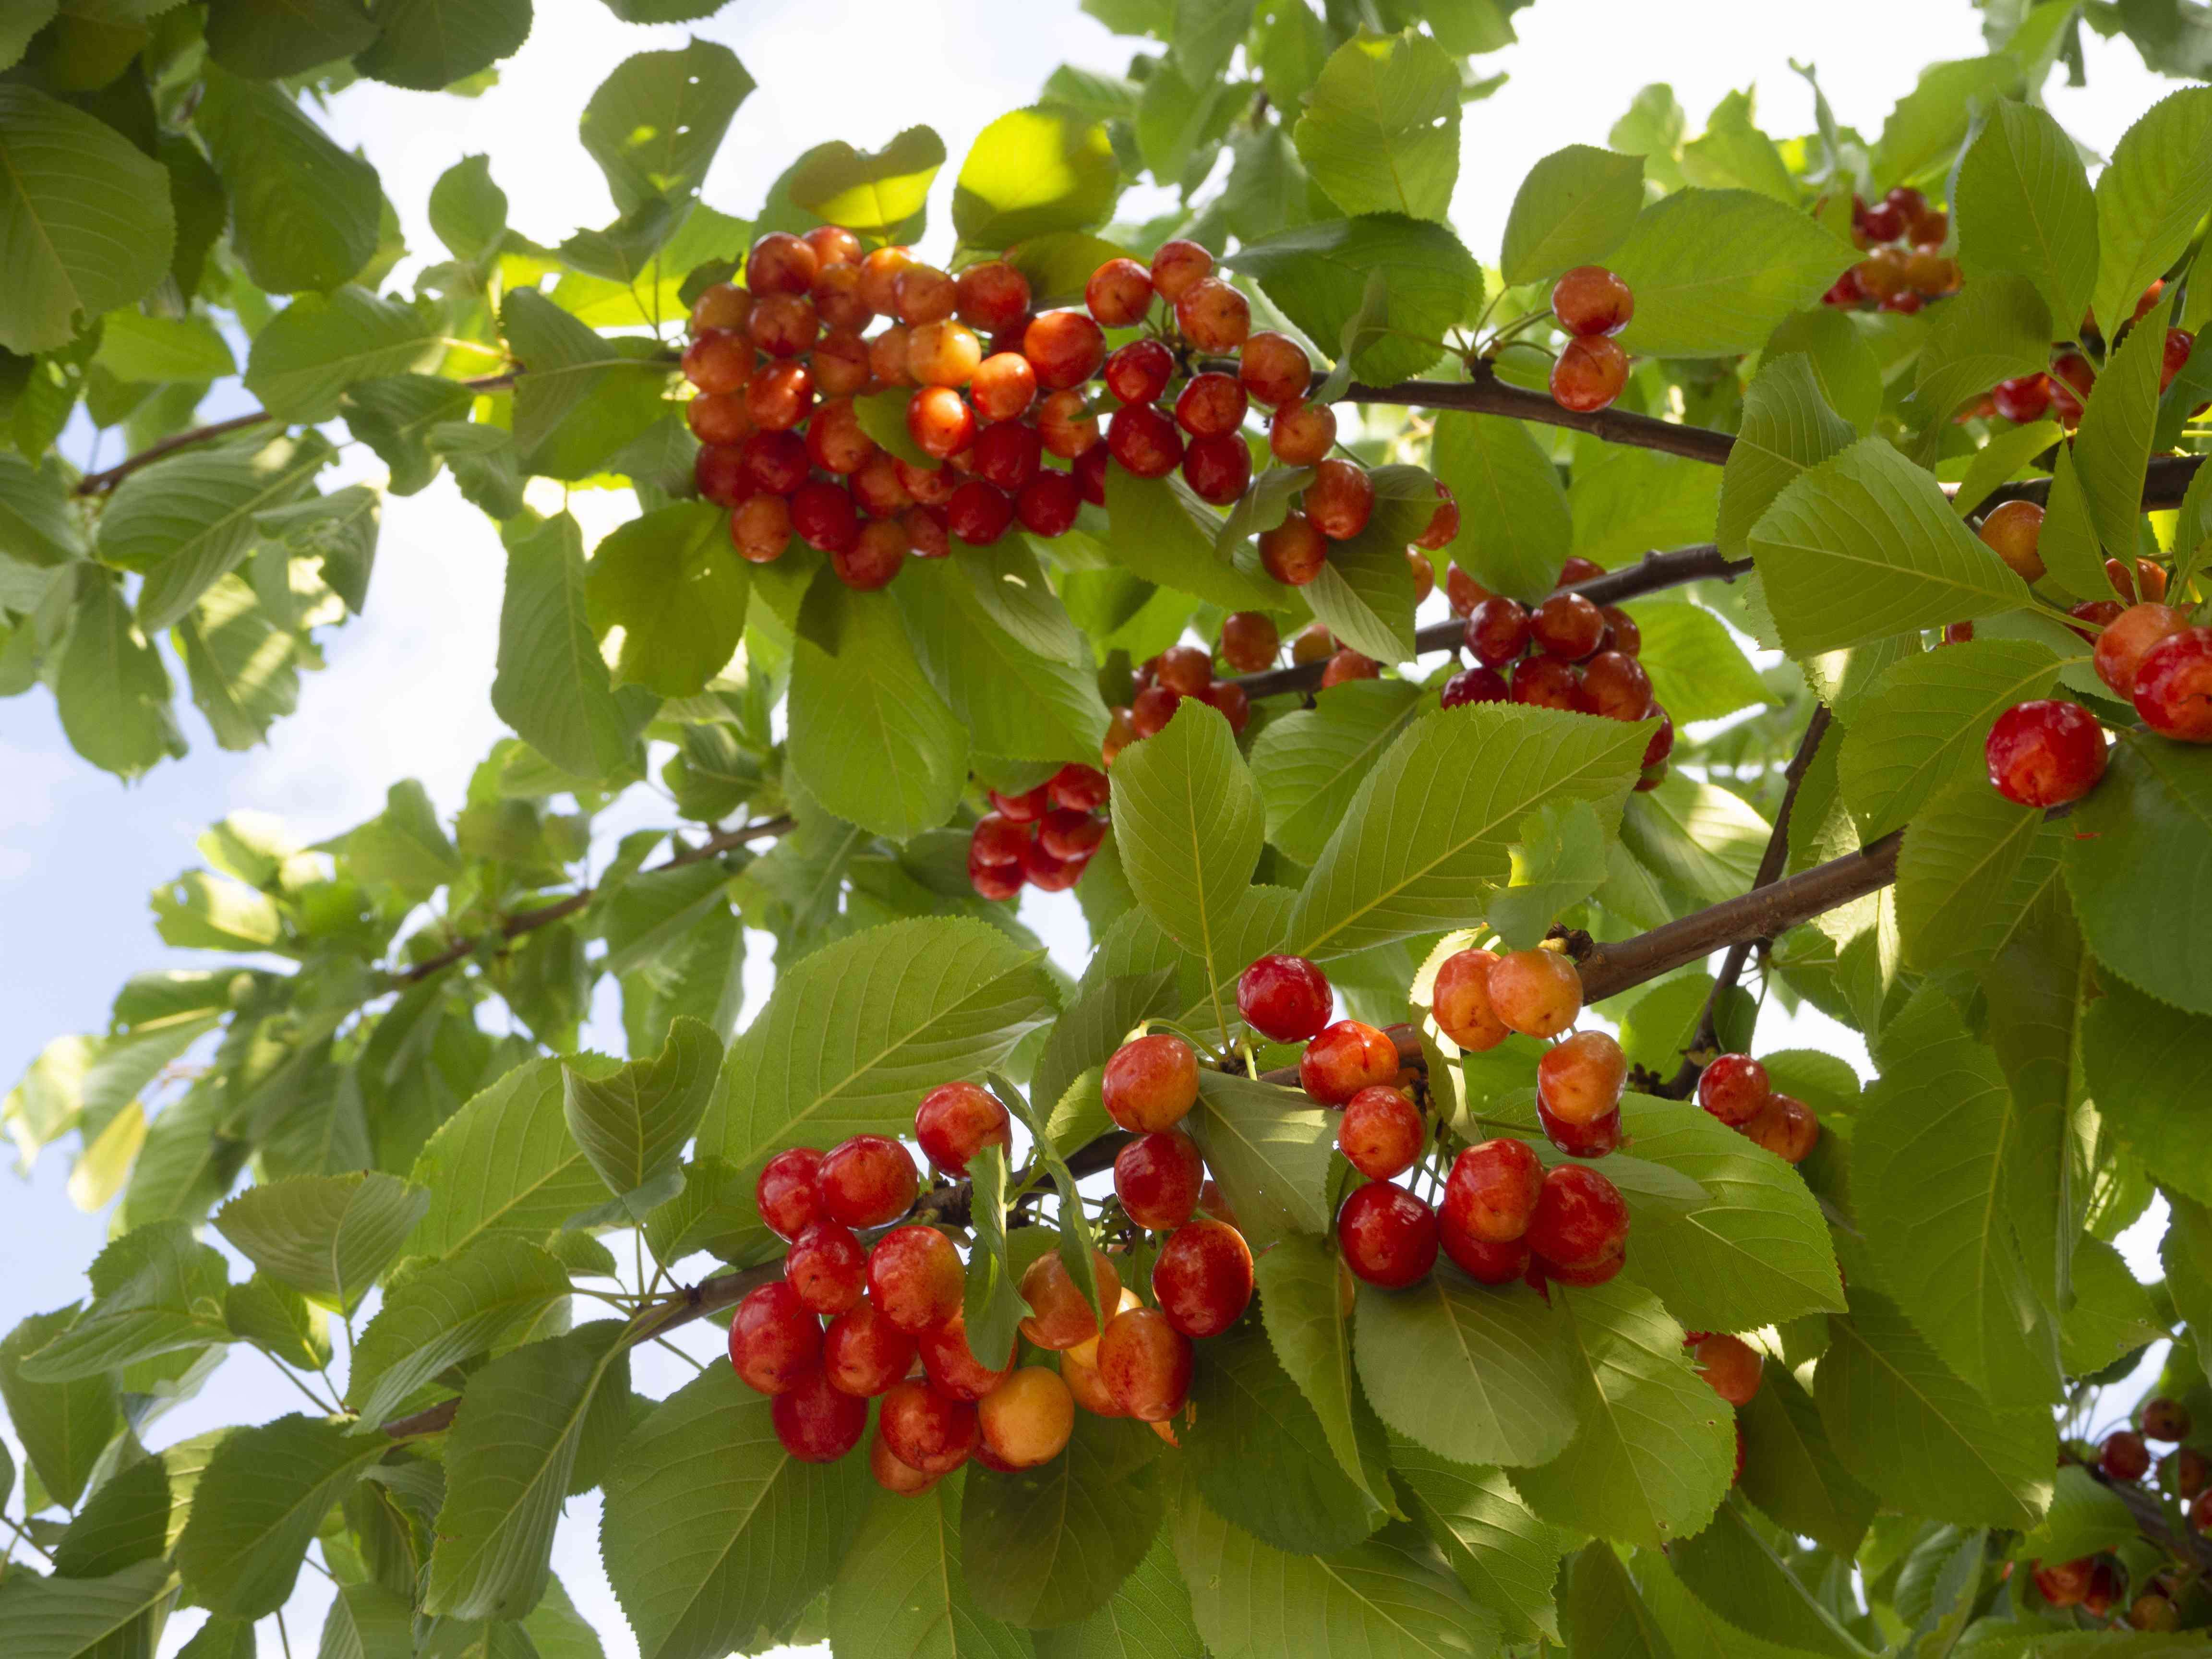 Red cherries Prunus avium on the branches of a tree in a garden in Greece